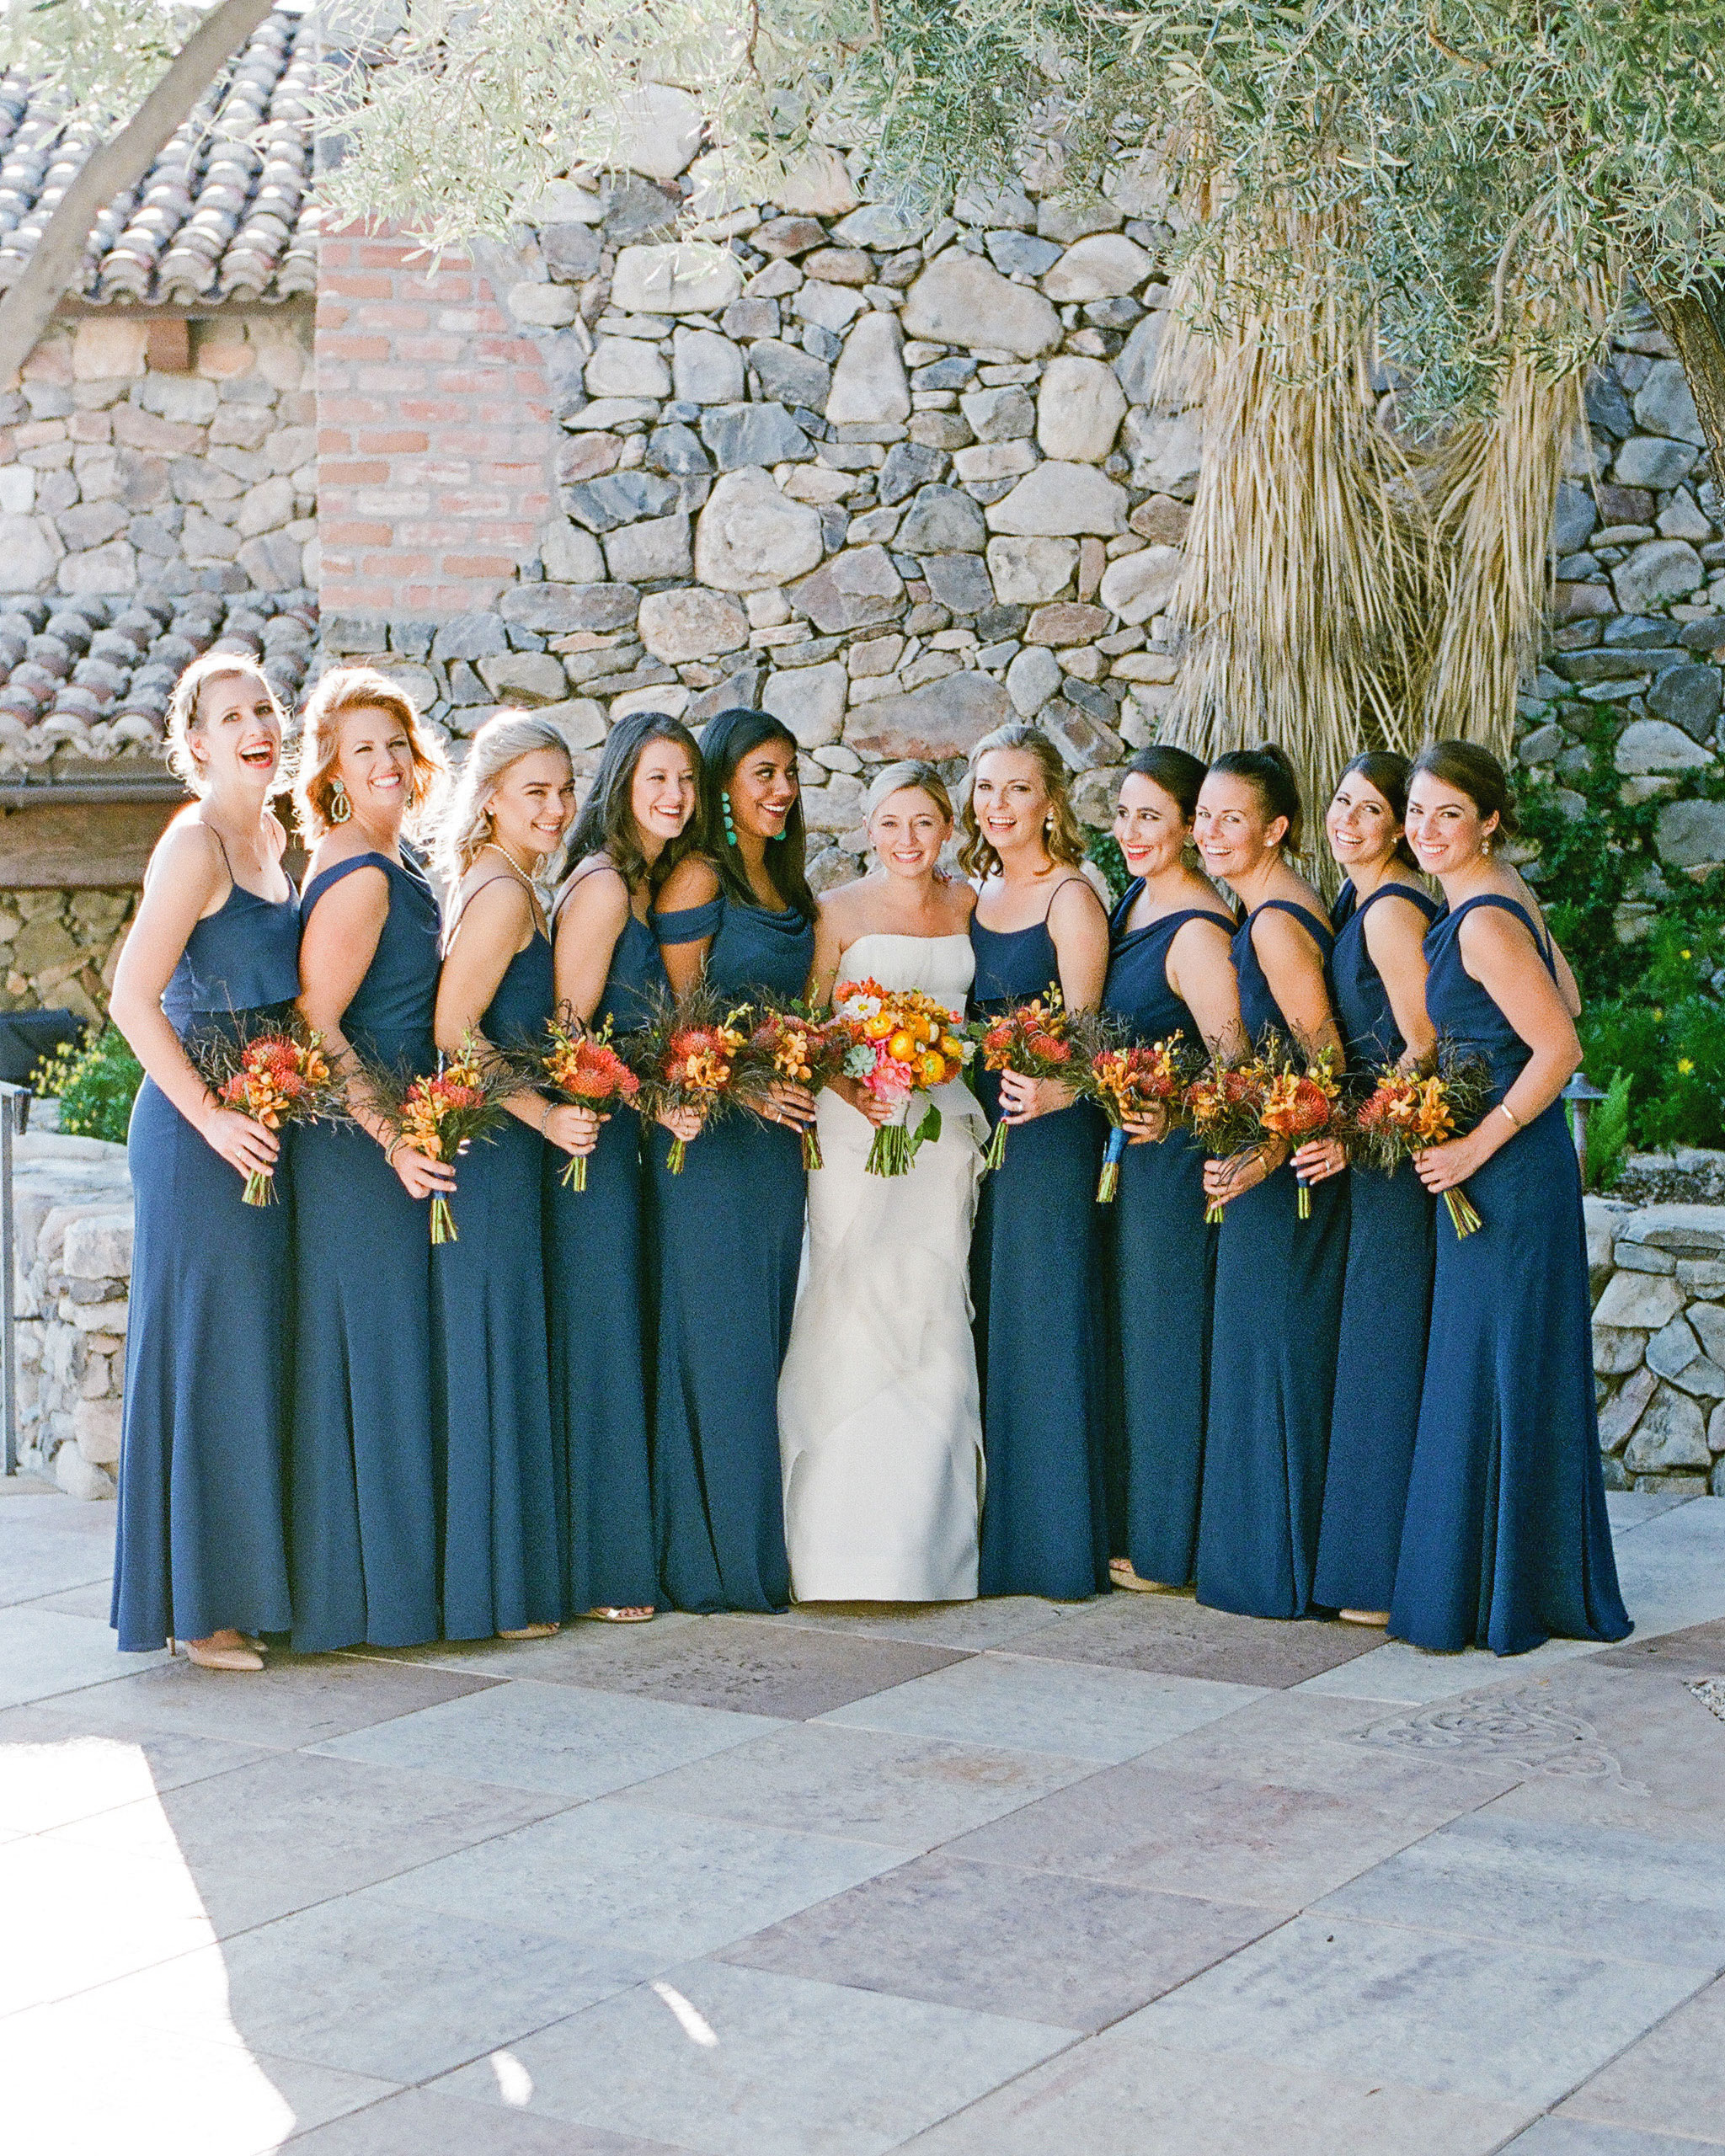 7 Tips to Make Shopping for Bridesmaids' Dresses a Stress-Free Experience